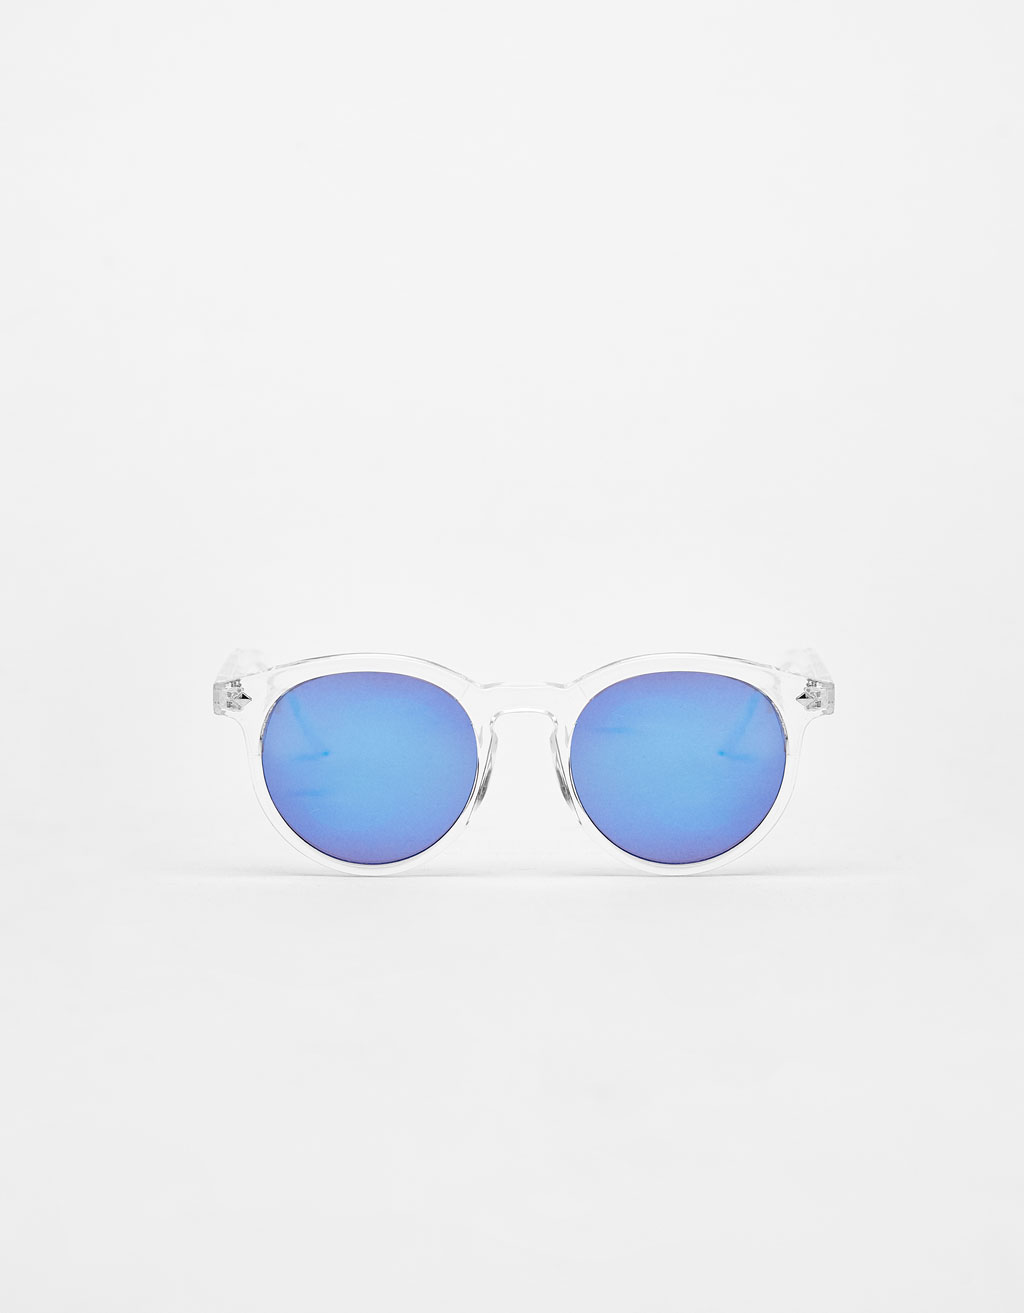 Sunglasses with clear frame